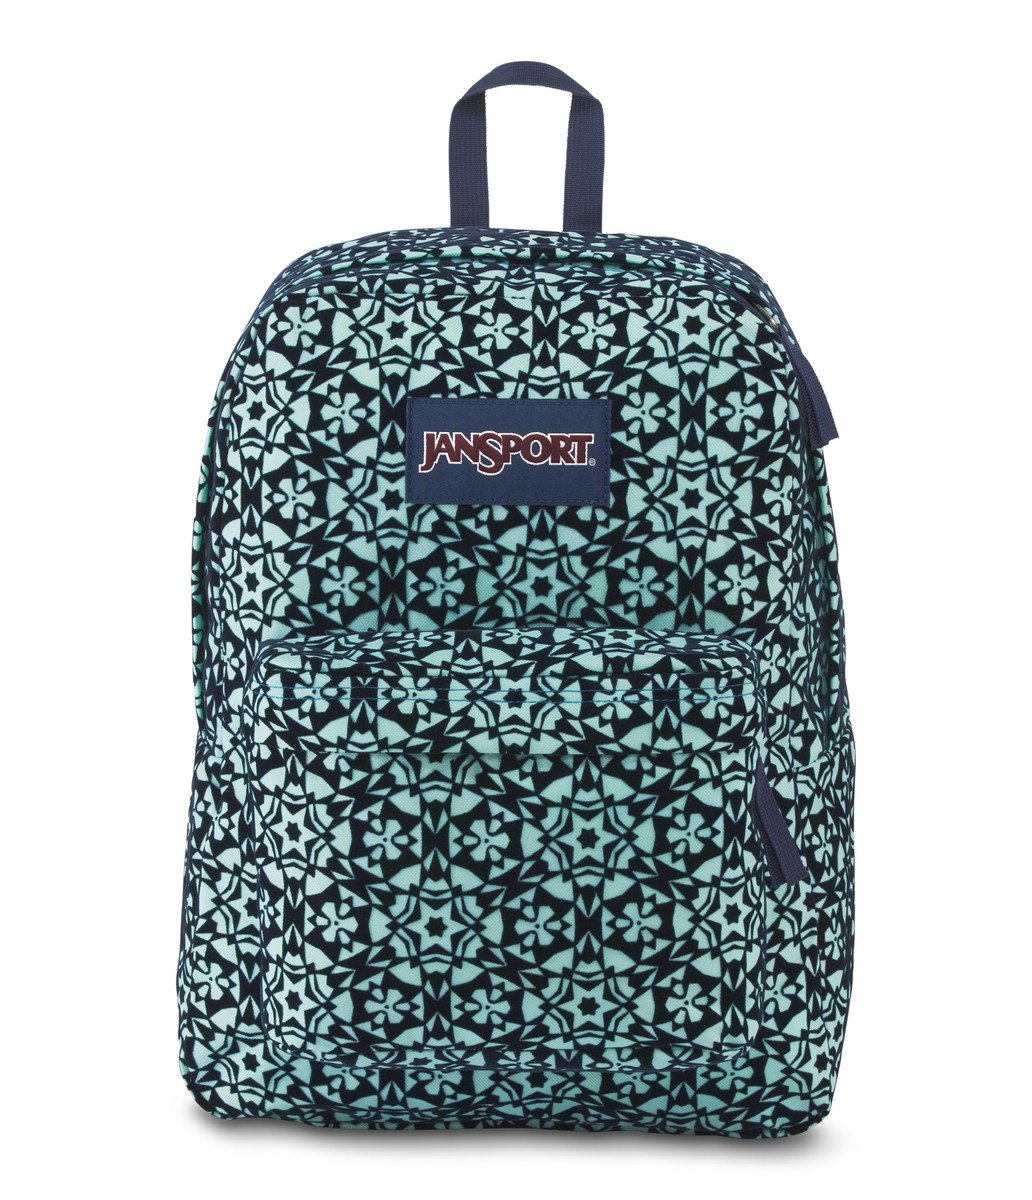 JanSport High Stakes Backpack- Sale Colors (Aqua Dash Morrocan Flock)